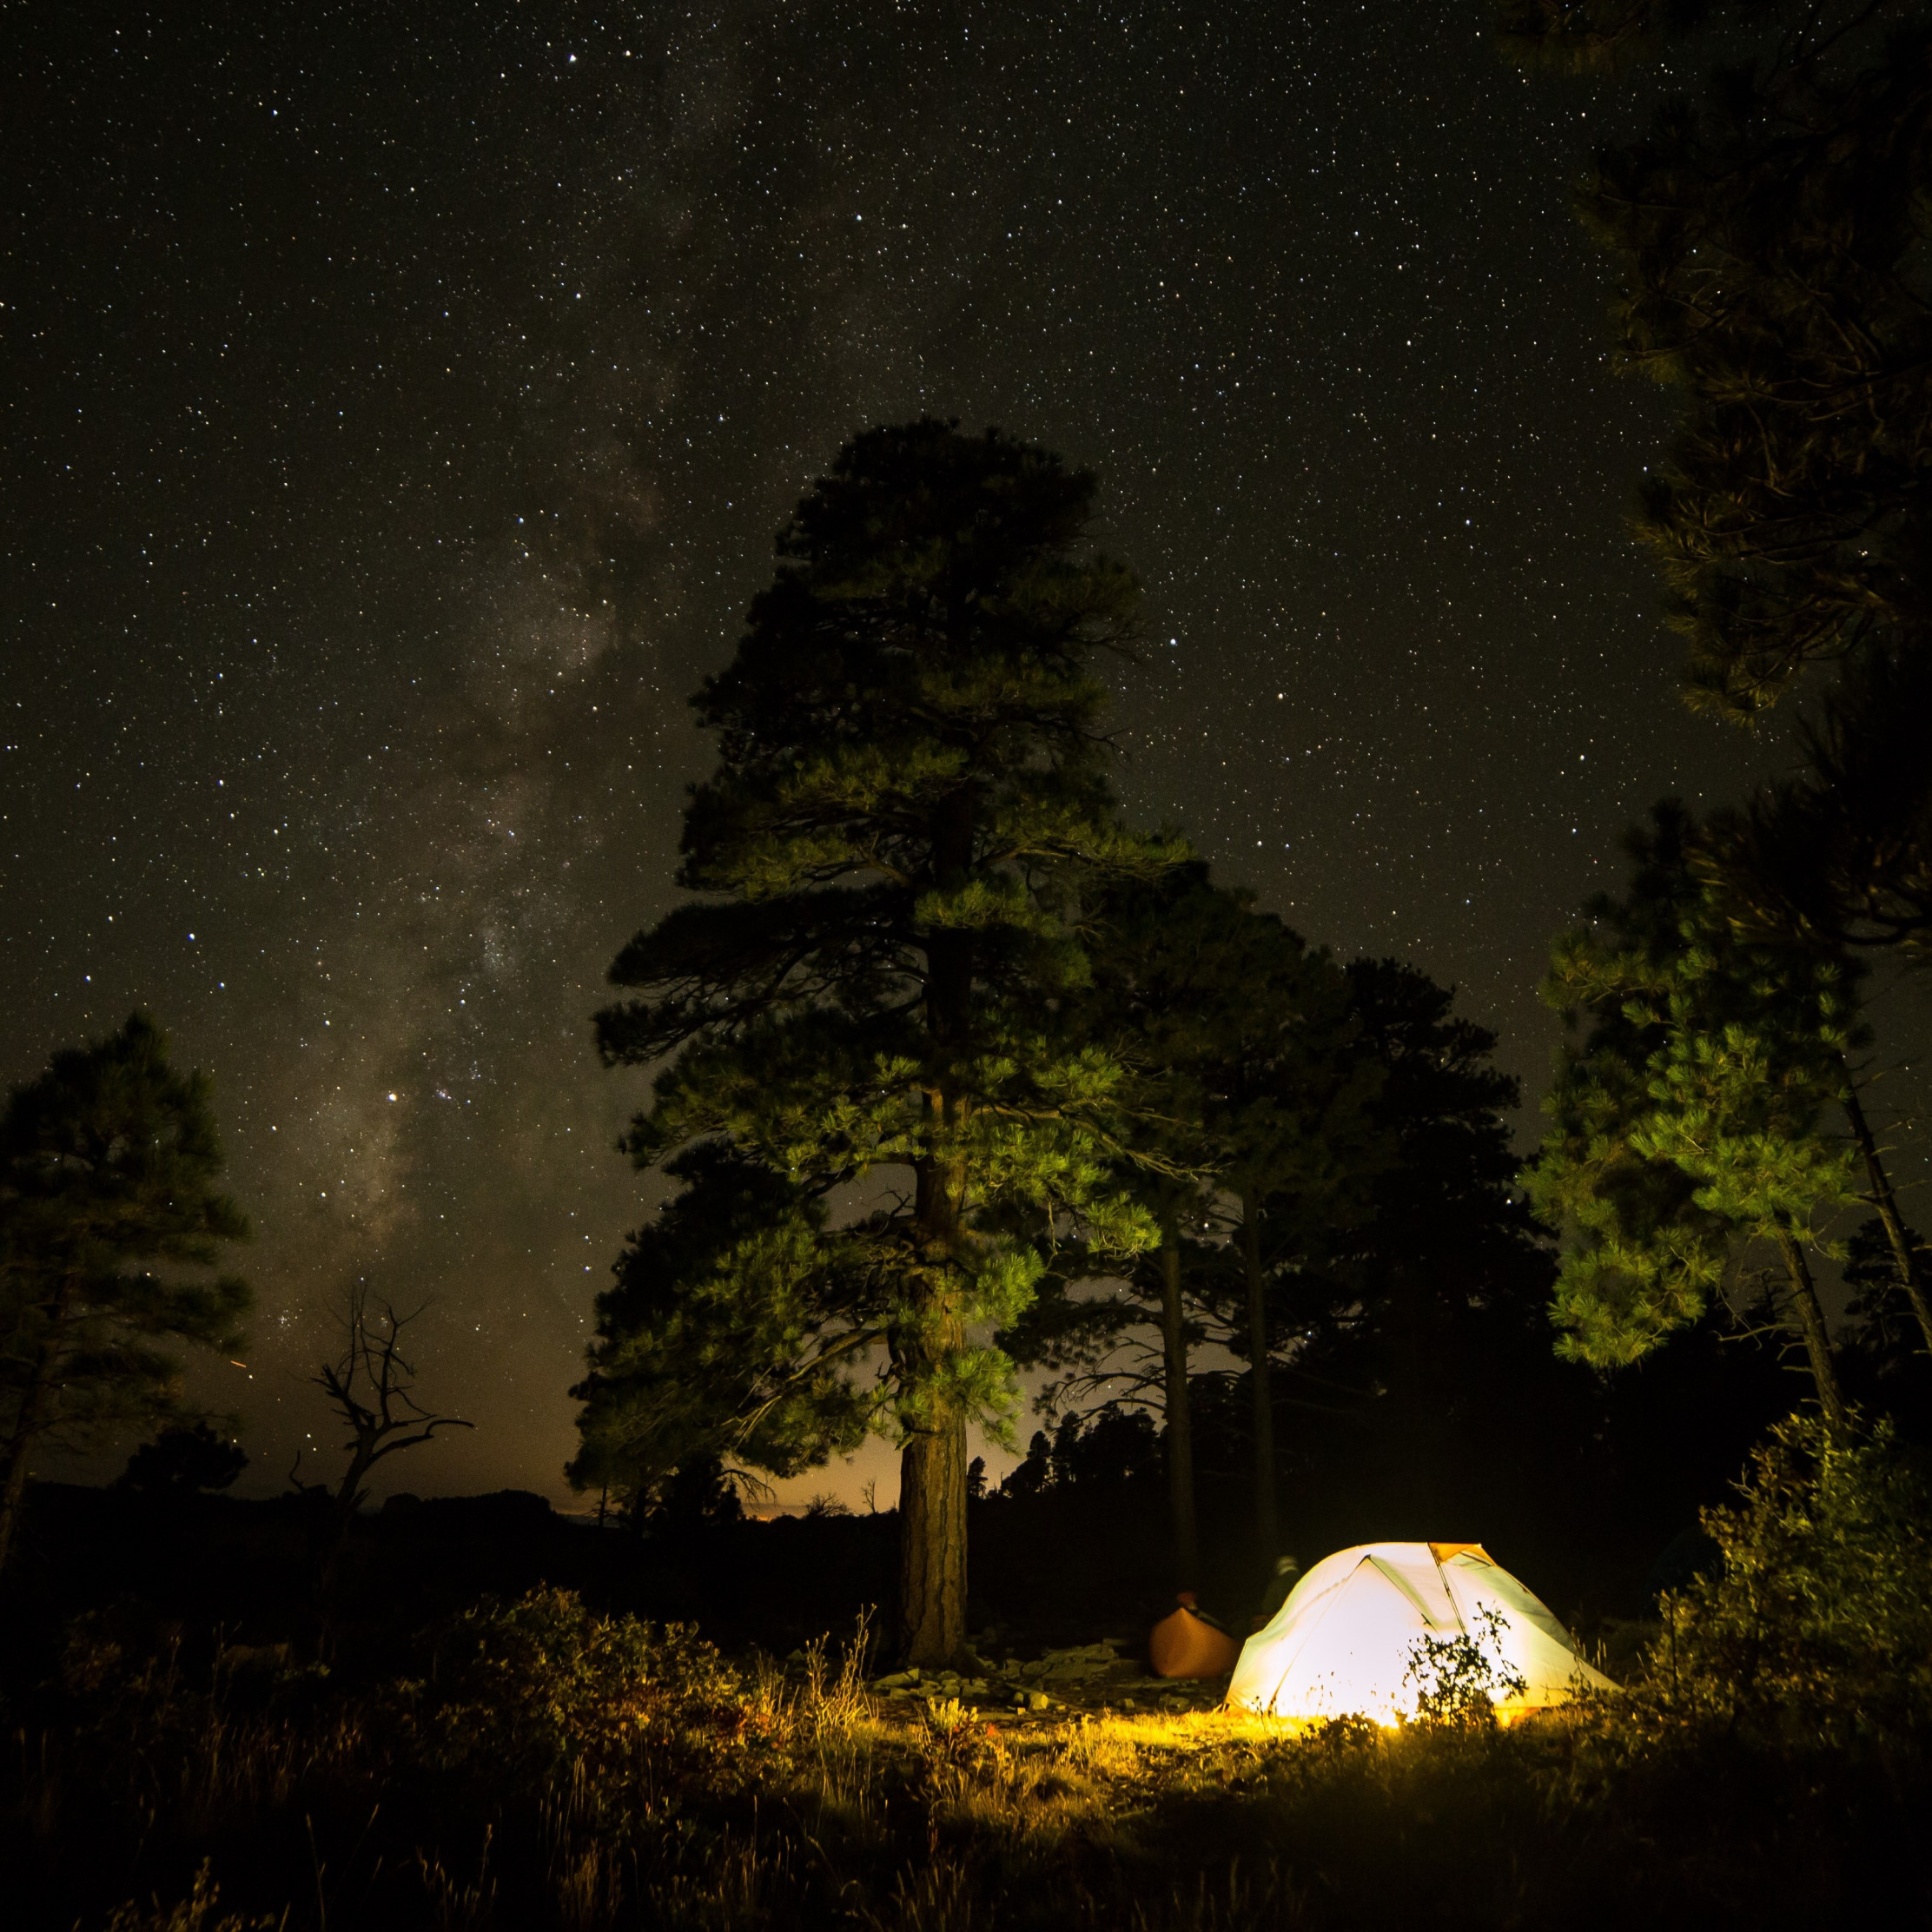 With tent under the night sky wallpaper 2224x2224